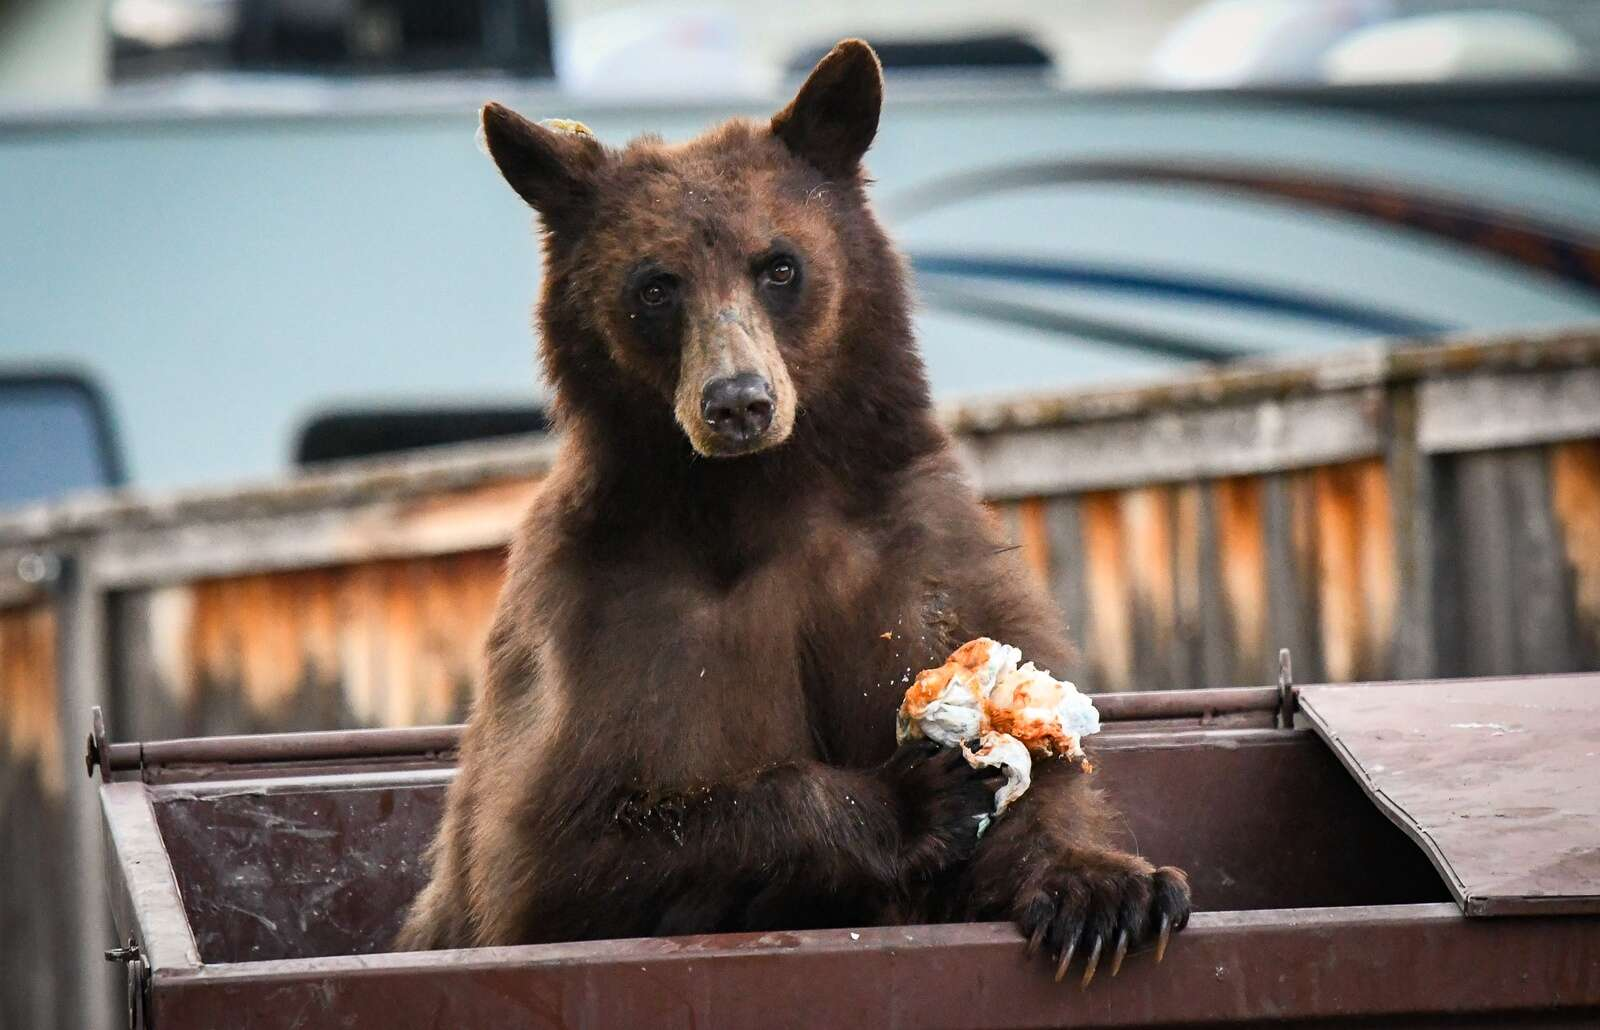 Trash in Glenwood Springs causing more bear conflicts than usual